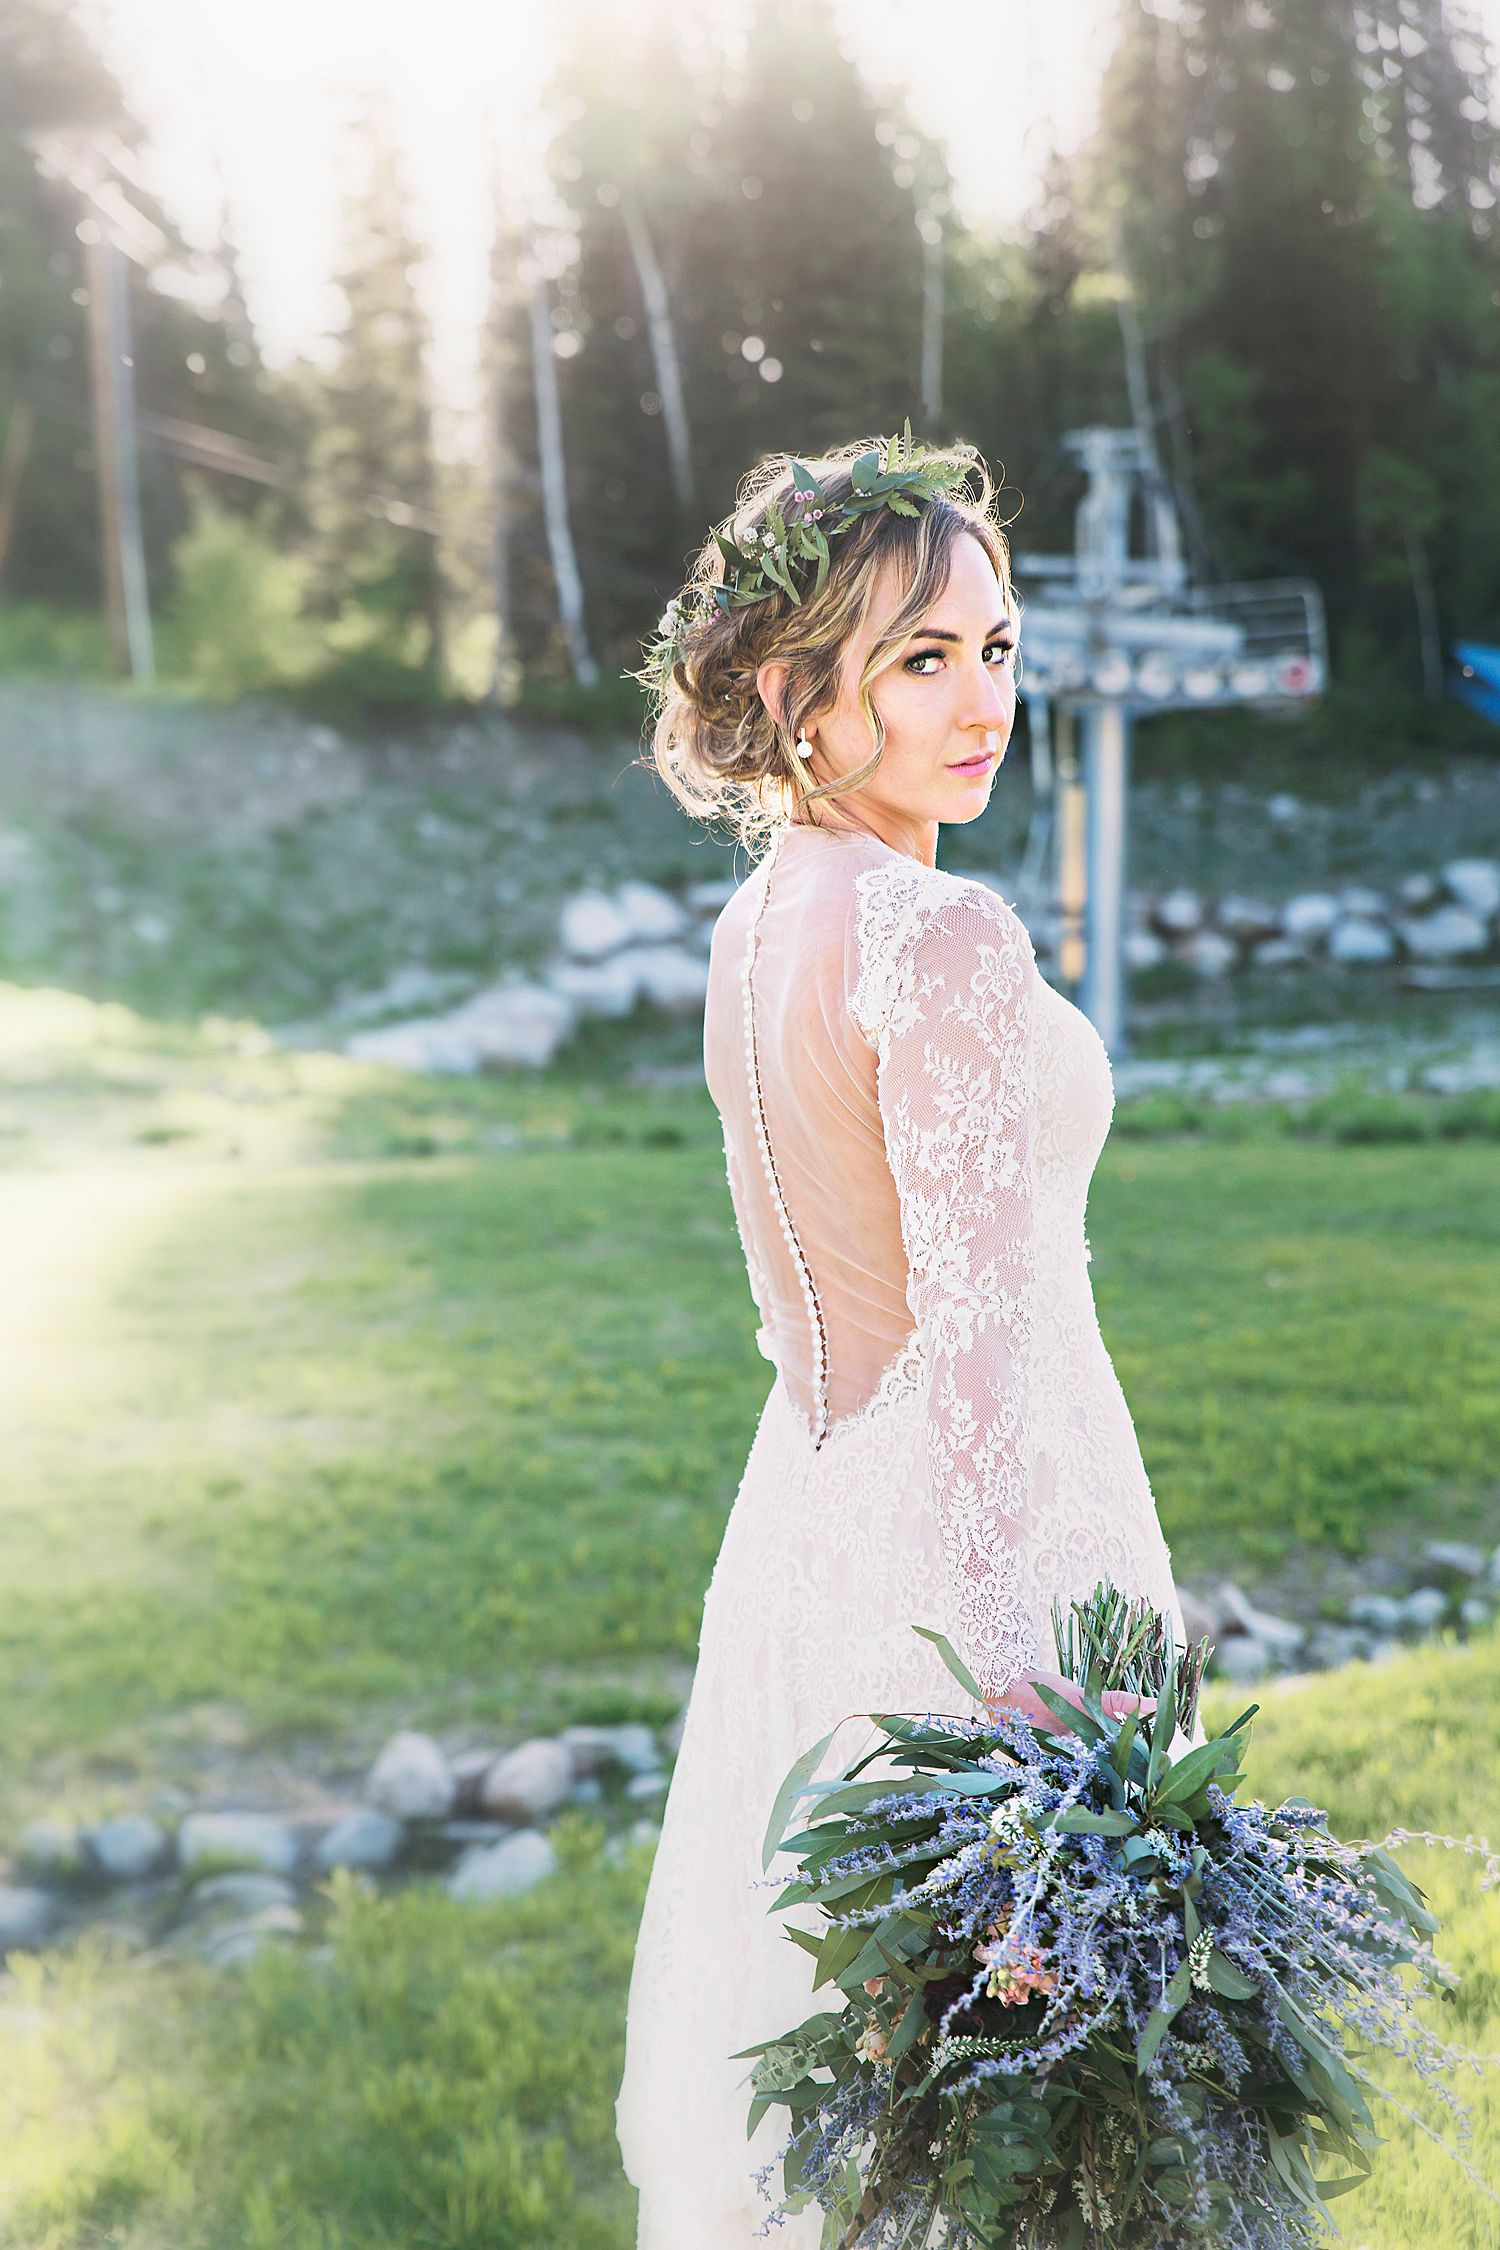 bride wearing flower crown and hold bridal bouquet at outdoor mountain wedding venue